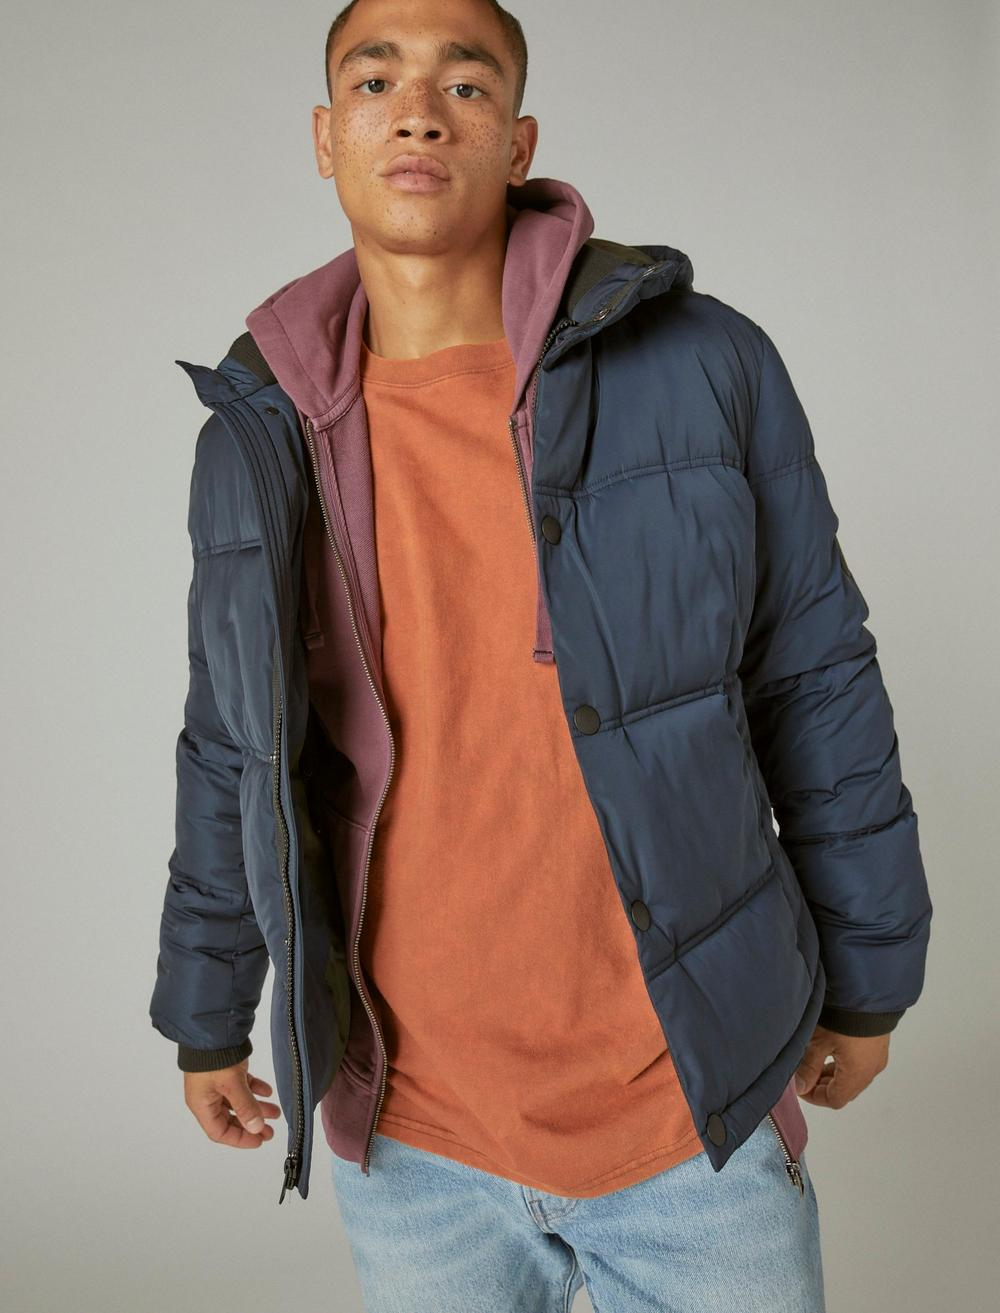 POLY TWILL HOODED HIPSTER JACKET, image 6